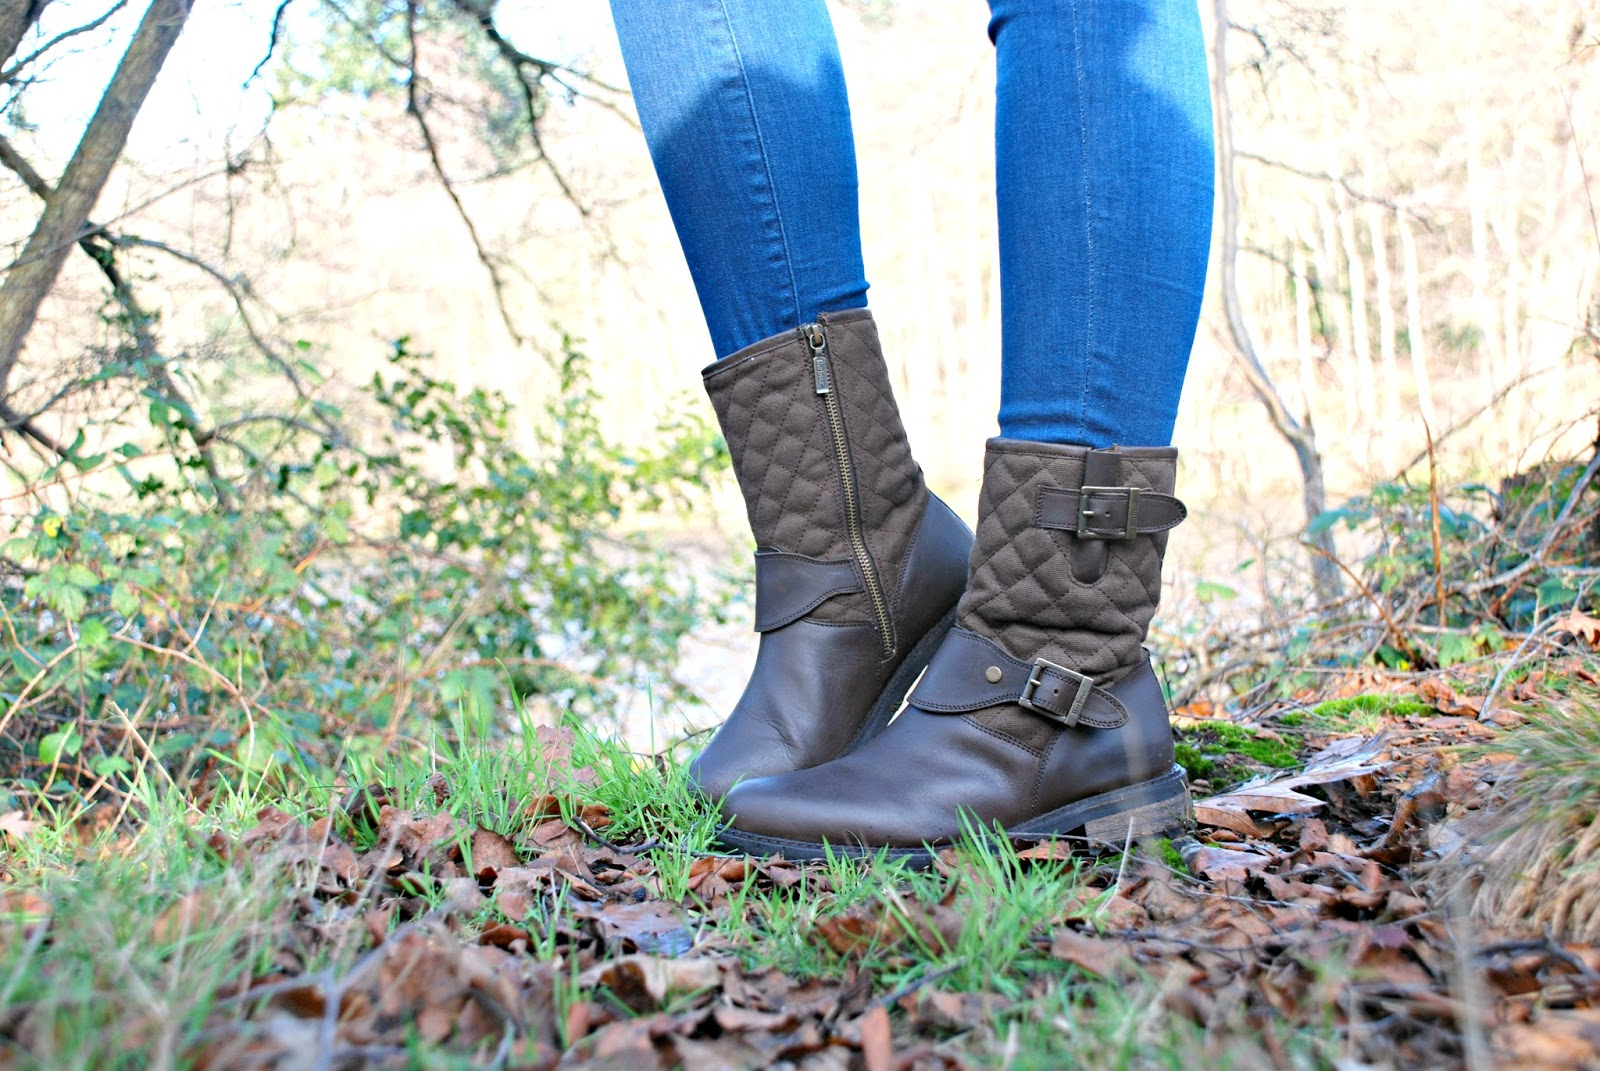 Barbour International boots